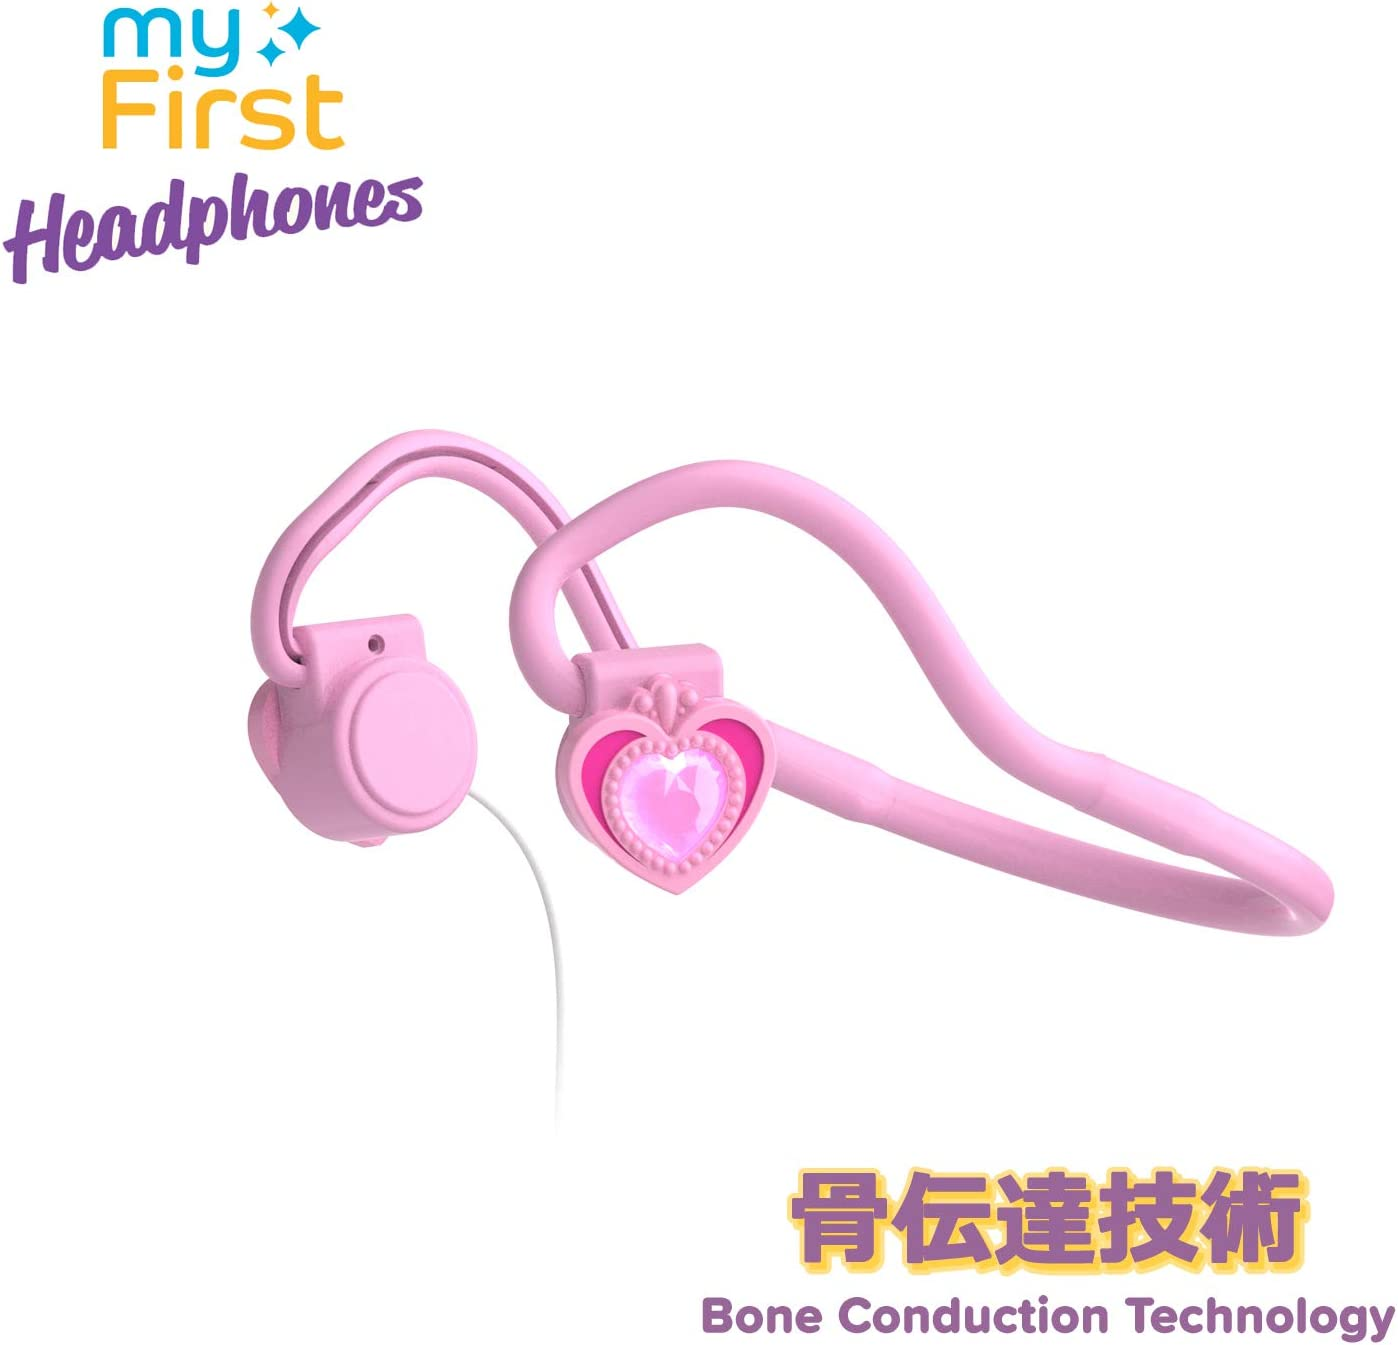 The Ear Headphone for Kids with Bone Conduction for the toddler travel on Airplane